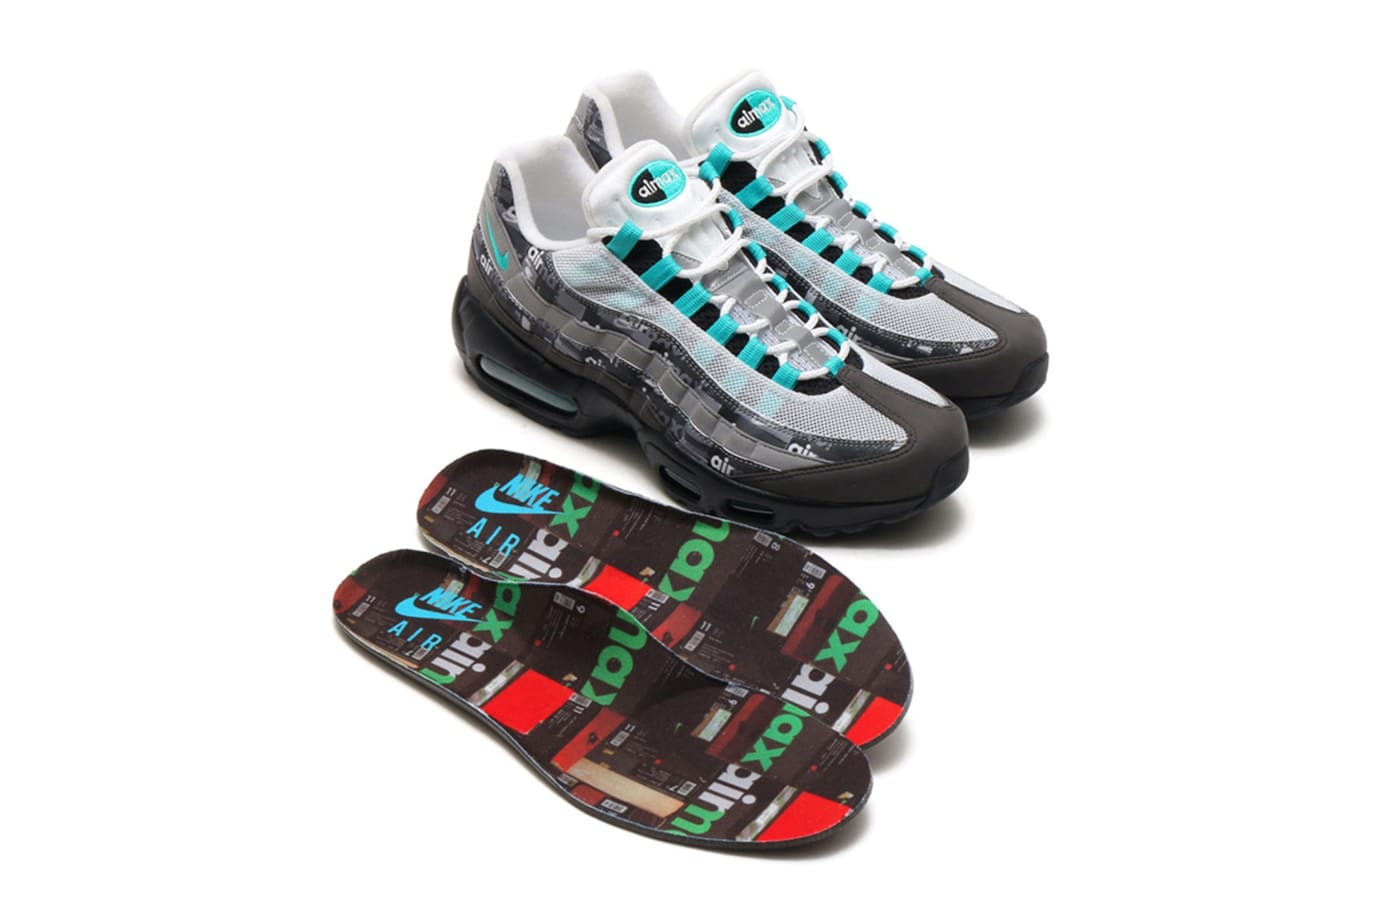 Atmos x Nike Air Max 'We Love Nike' Pack | Sole Collector